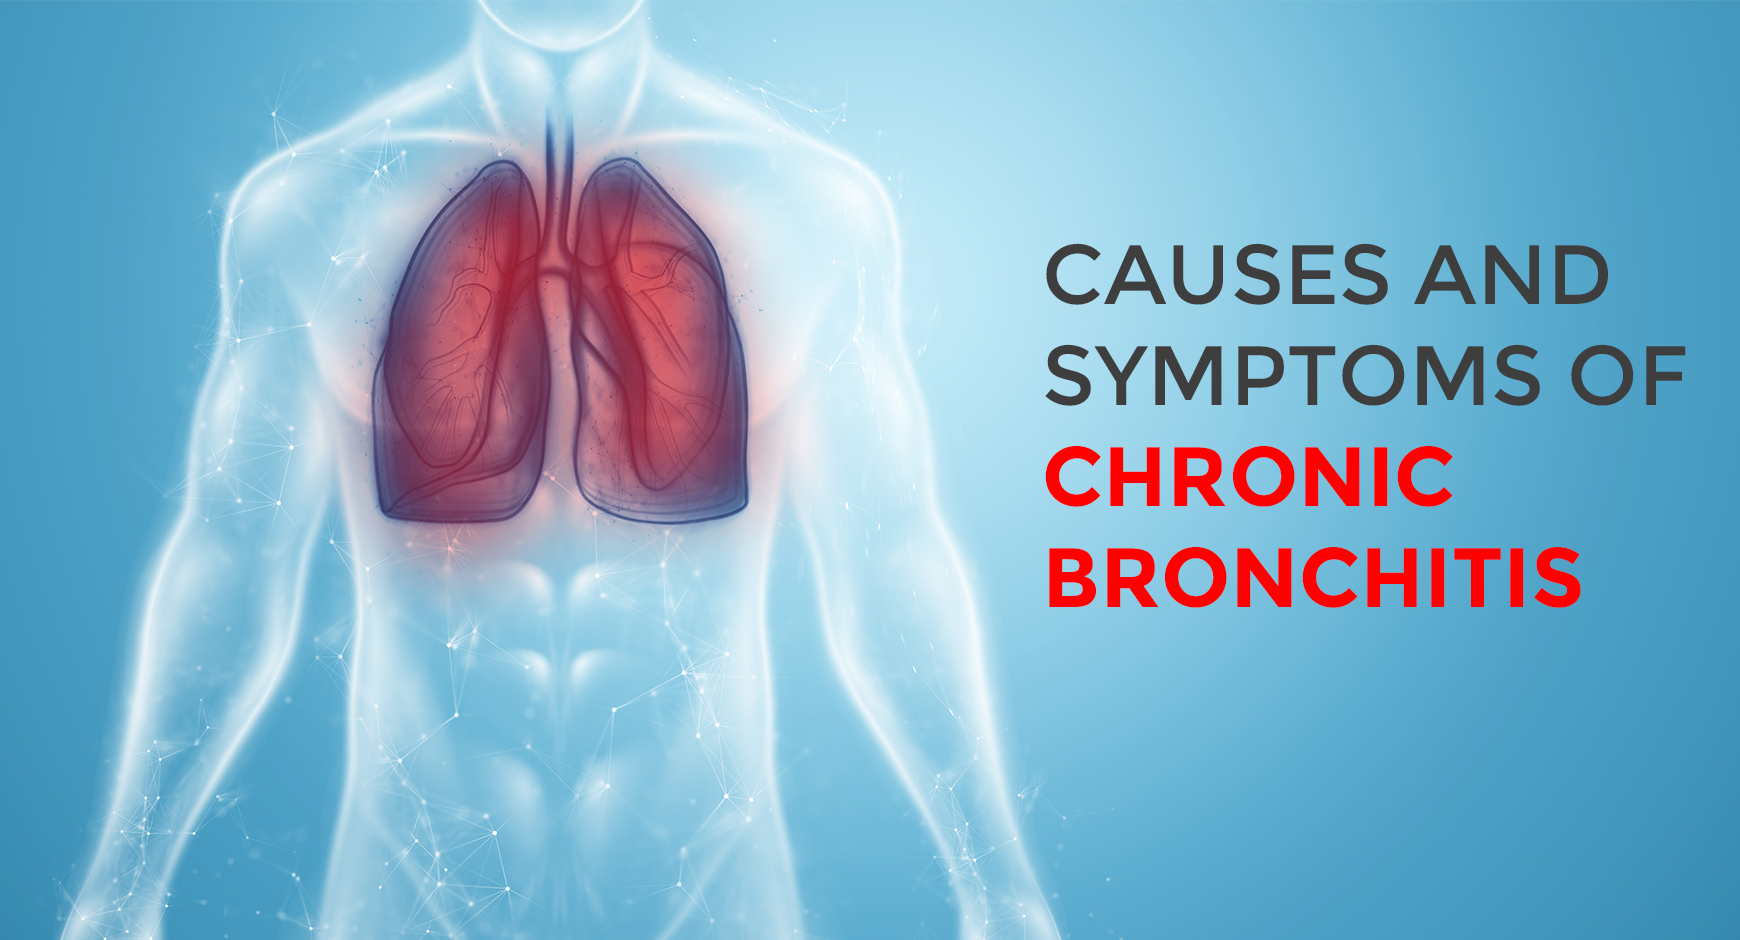 Causes and Symptoms of Chronic Bronchitis